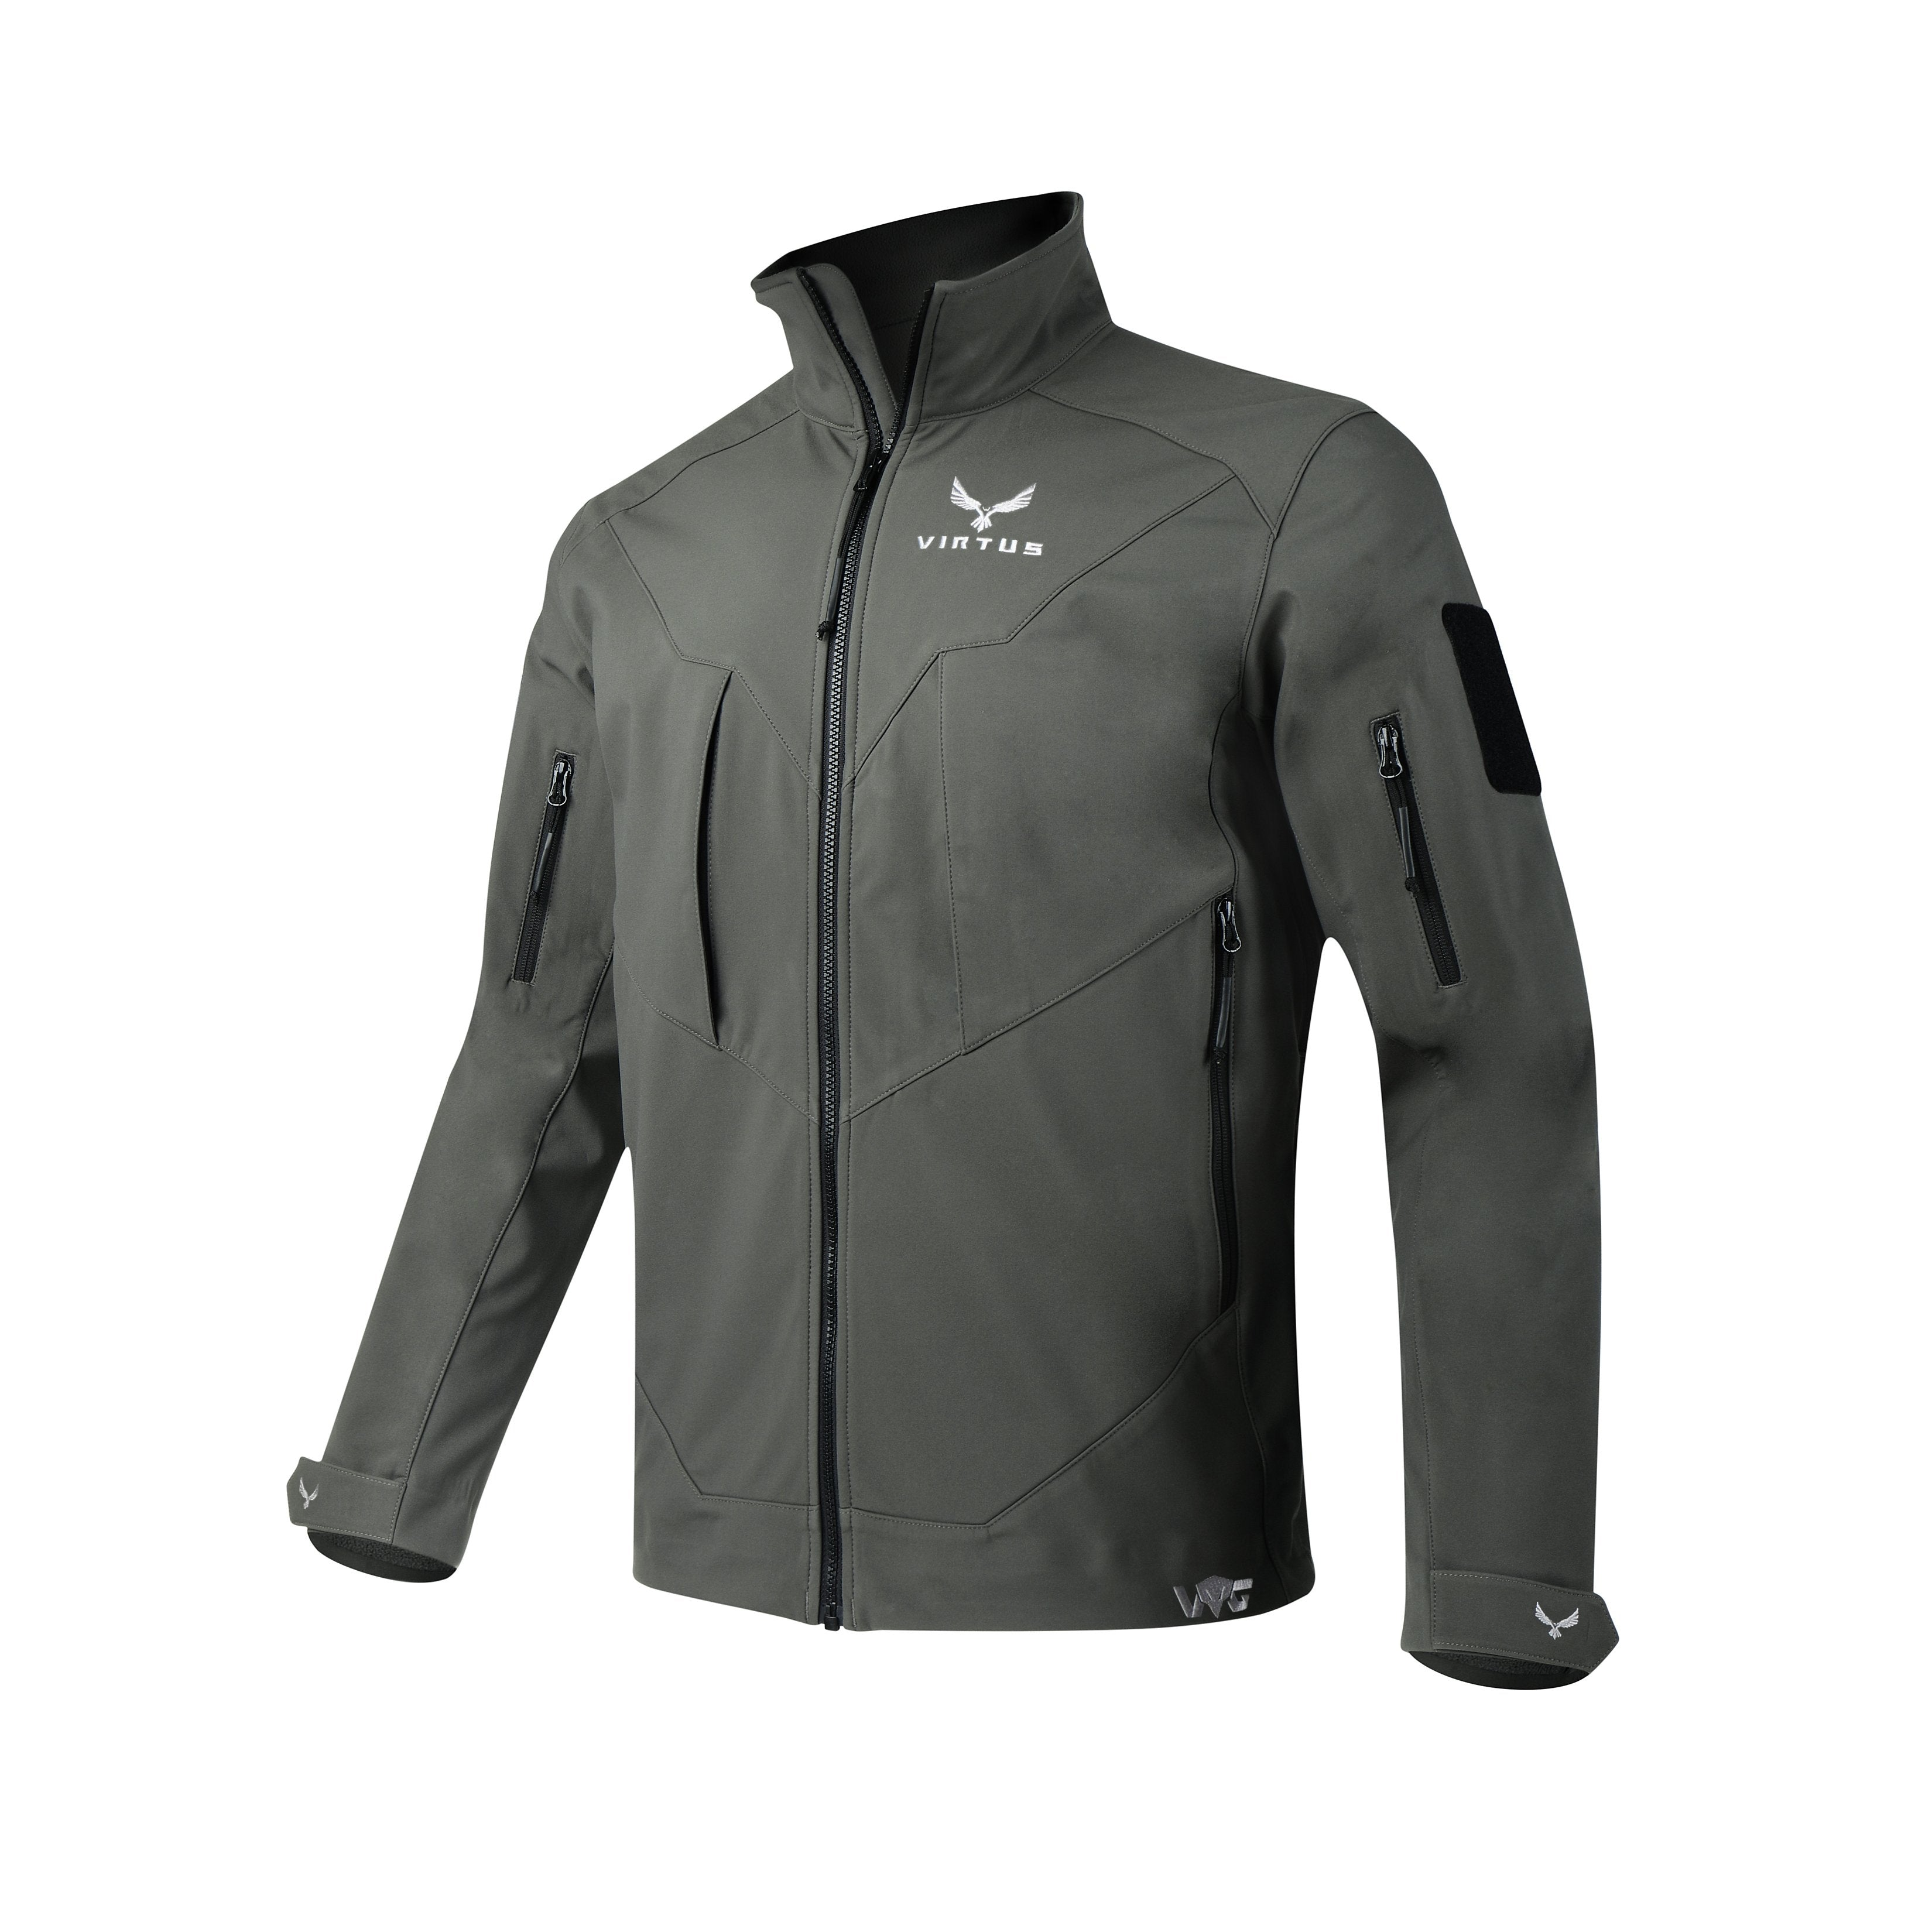 LEAF-Astraes fleece Jacket -- for Tactical Teams, Outdoors , Athletes